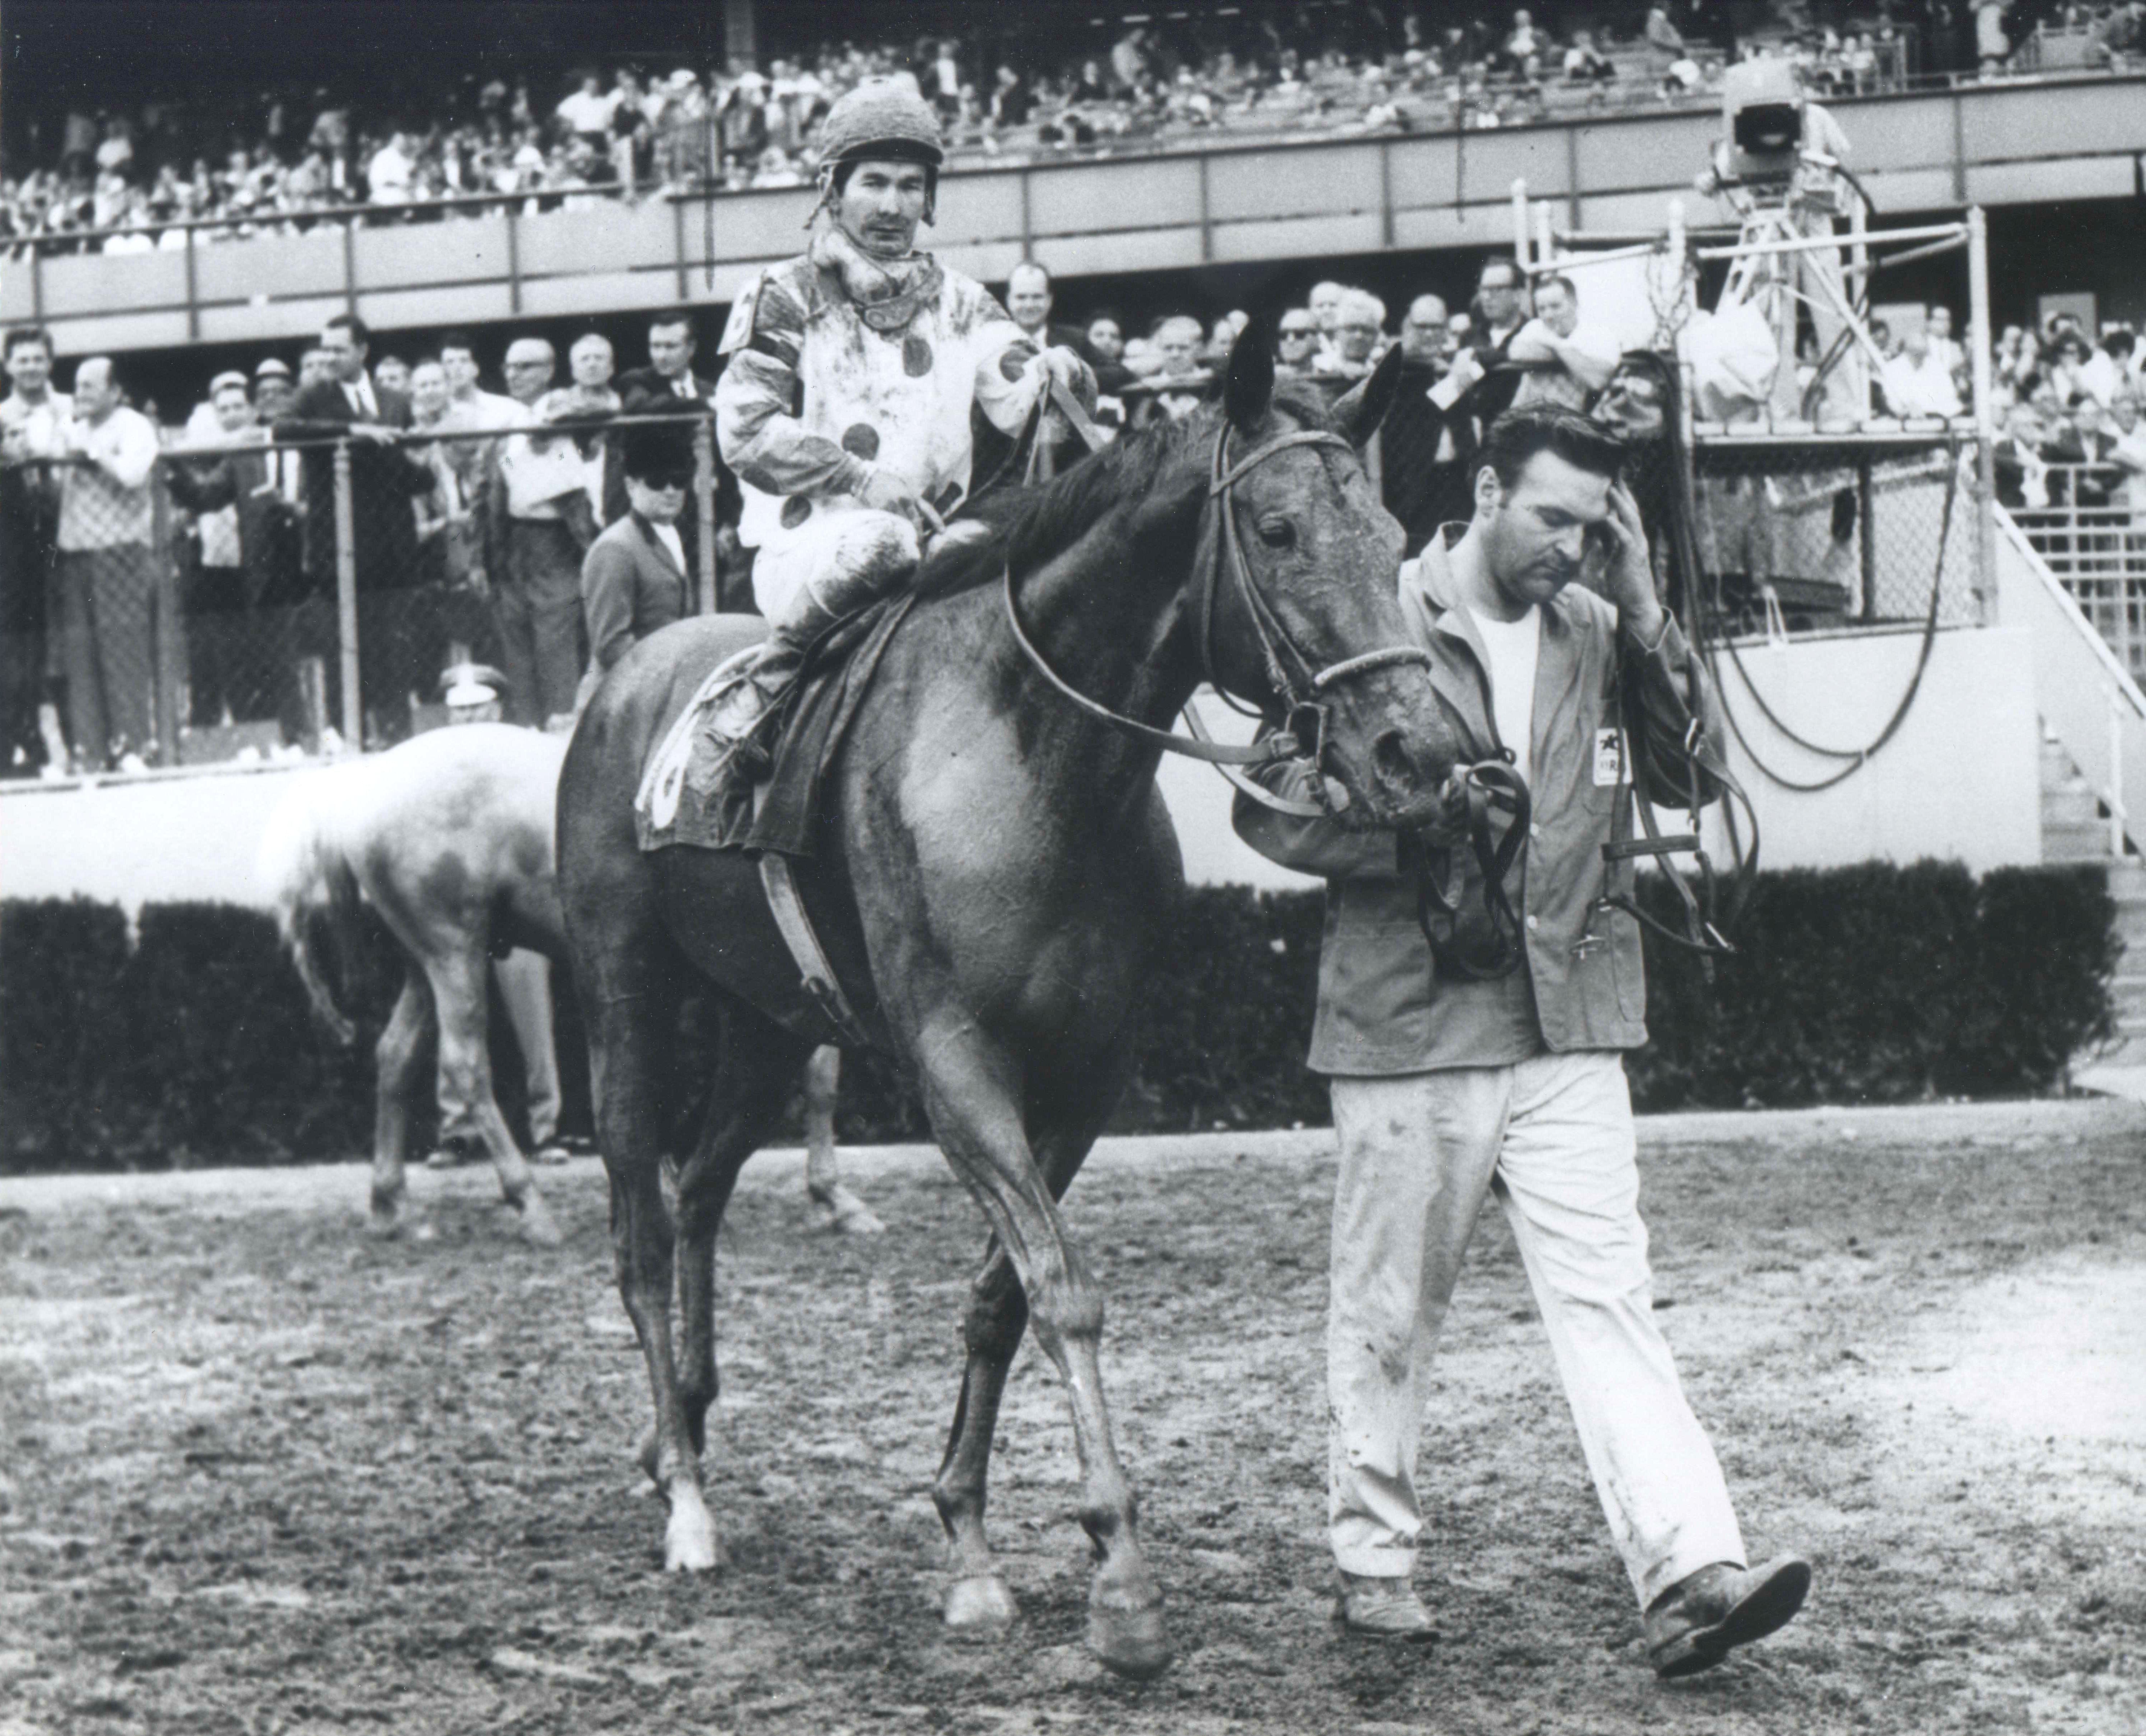 Damascus with Bill Shoemaker up (The BloodHorse)